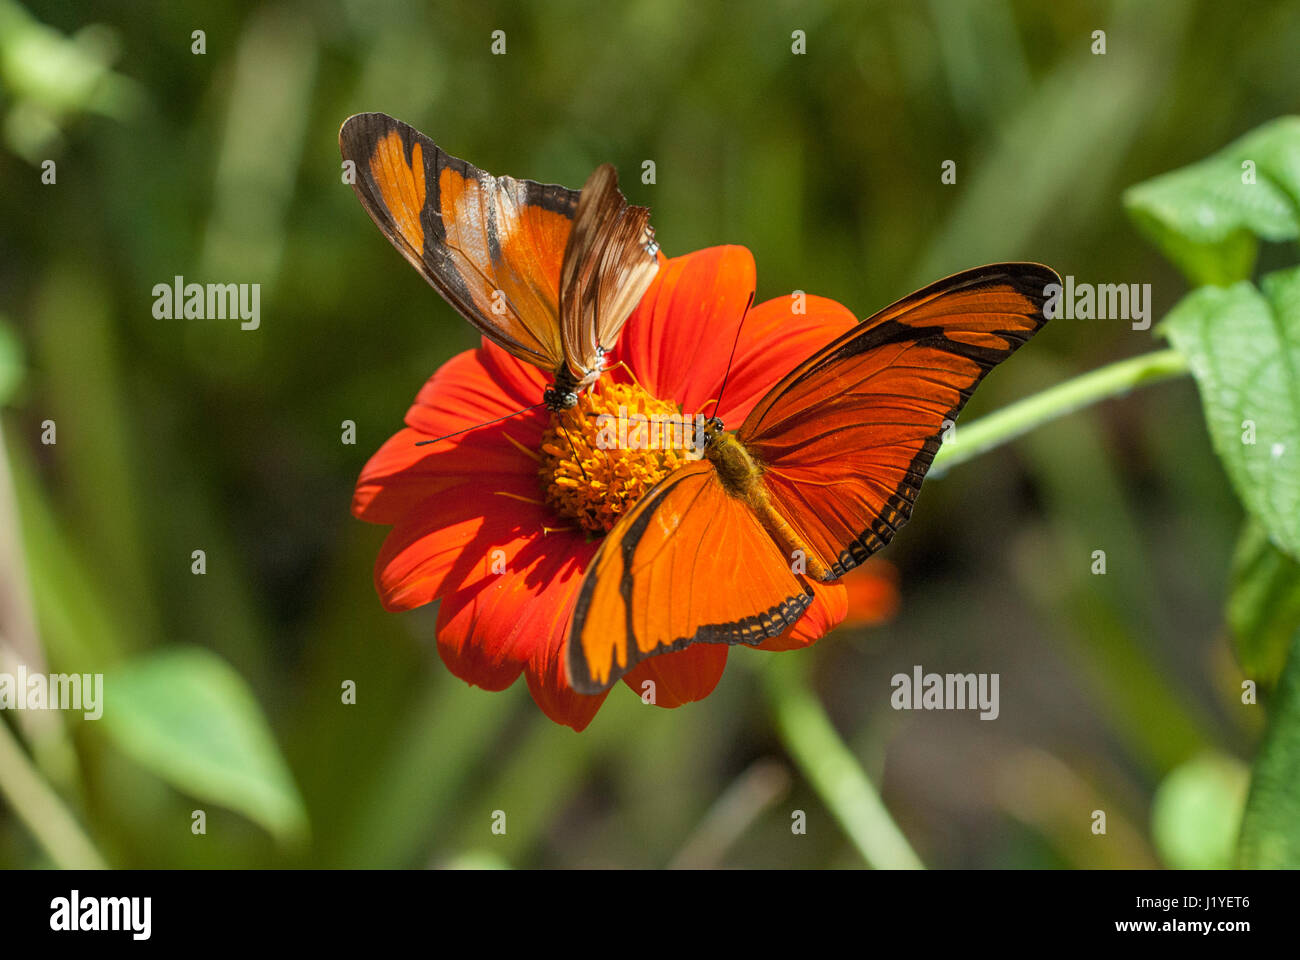 A pair of Julia butterflies (Dryas iulia) feeding on nectar from an orange coloured flower - Stock Image